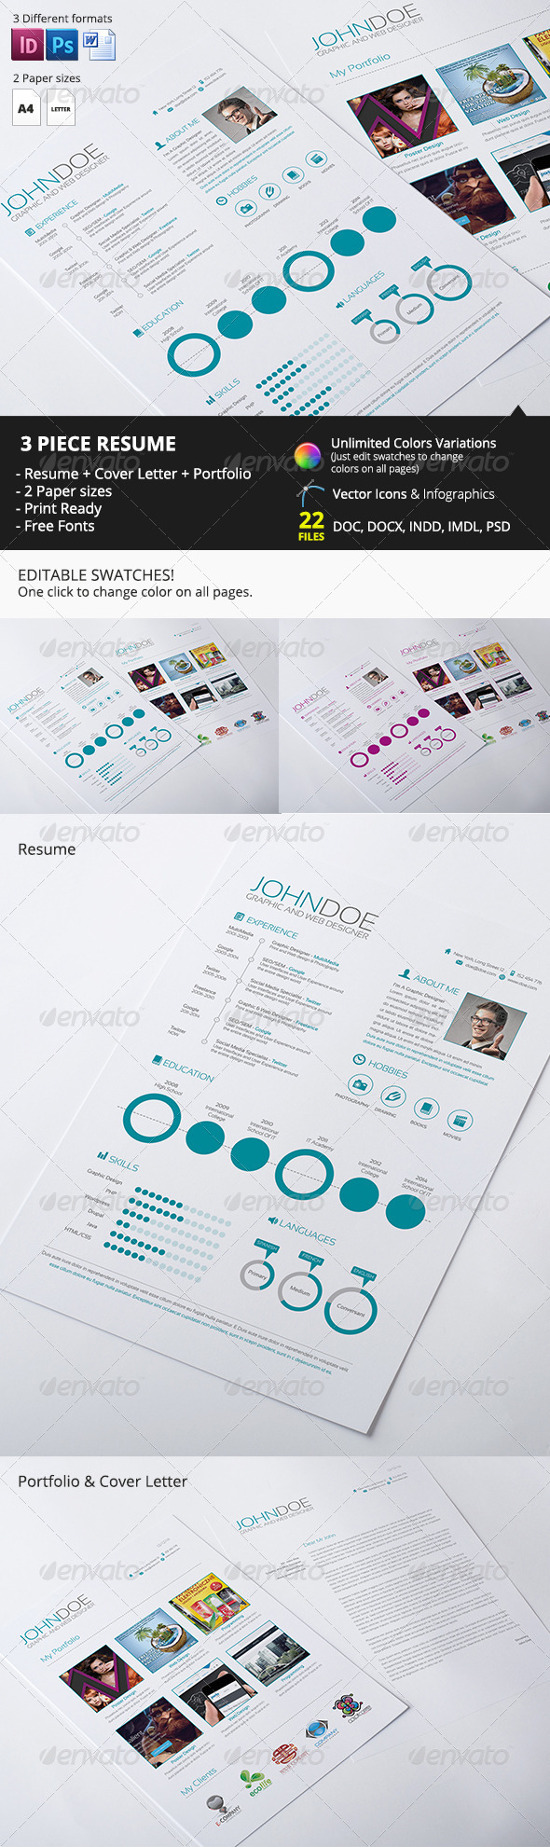 3 piece resume by heliosmedia infographic resume templates